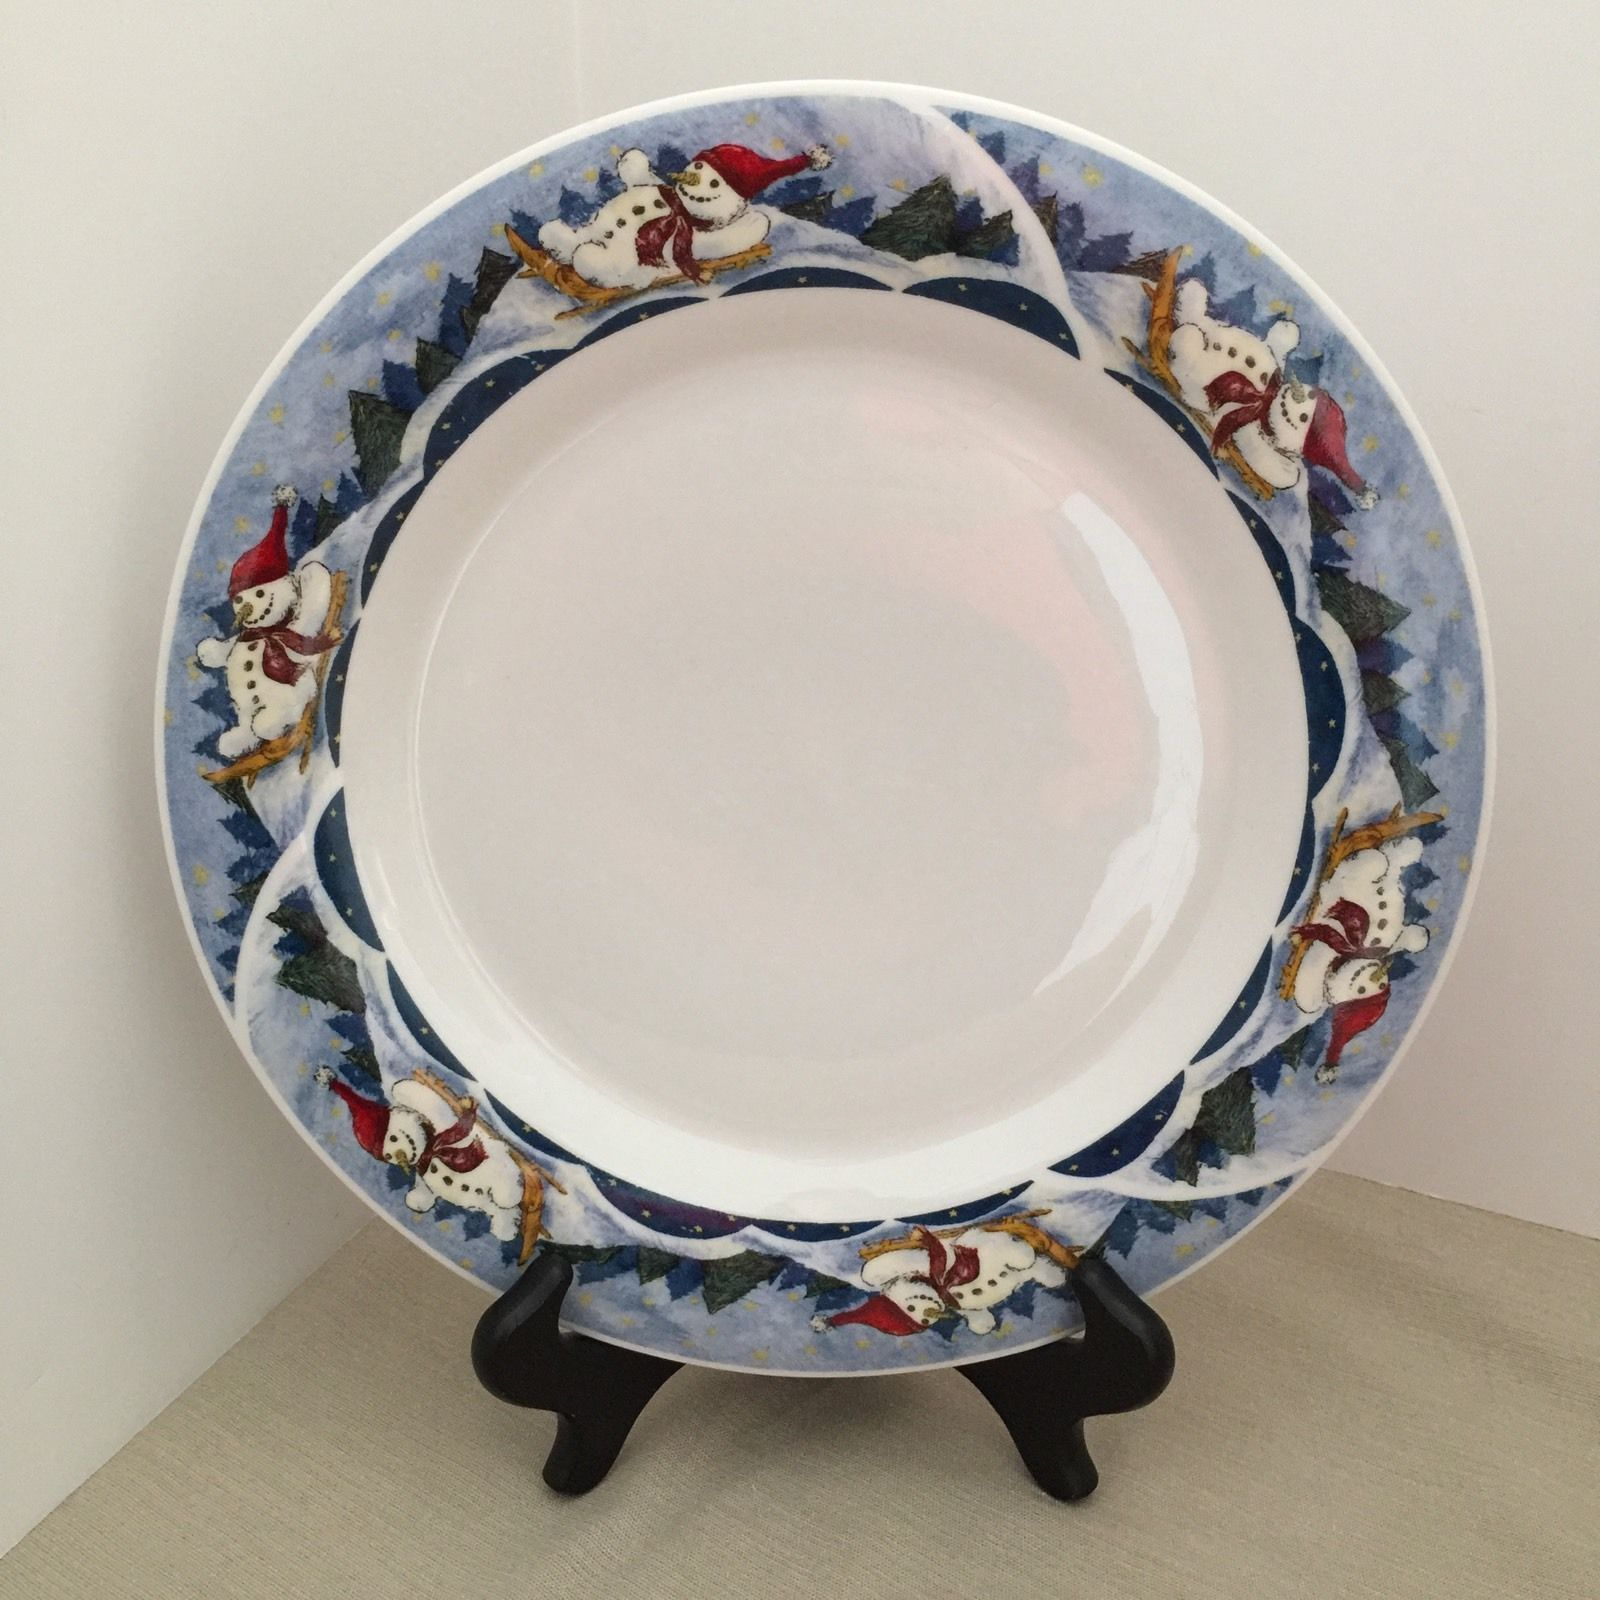 ONEIDA ROUND PLATTER/CHOP PLATE 11\  WIDE HOLIDAY DINING SNOW VALLEY PATTERN - $6.00 & Oneida Plate: 50 listings